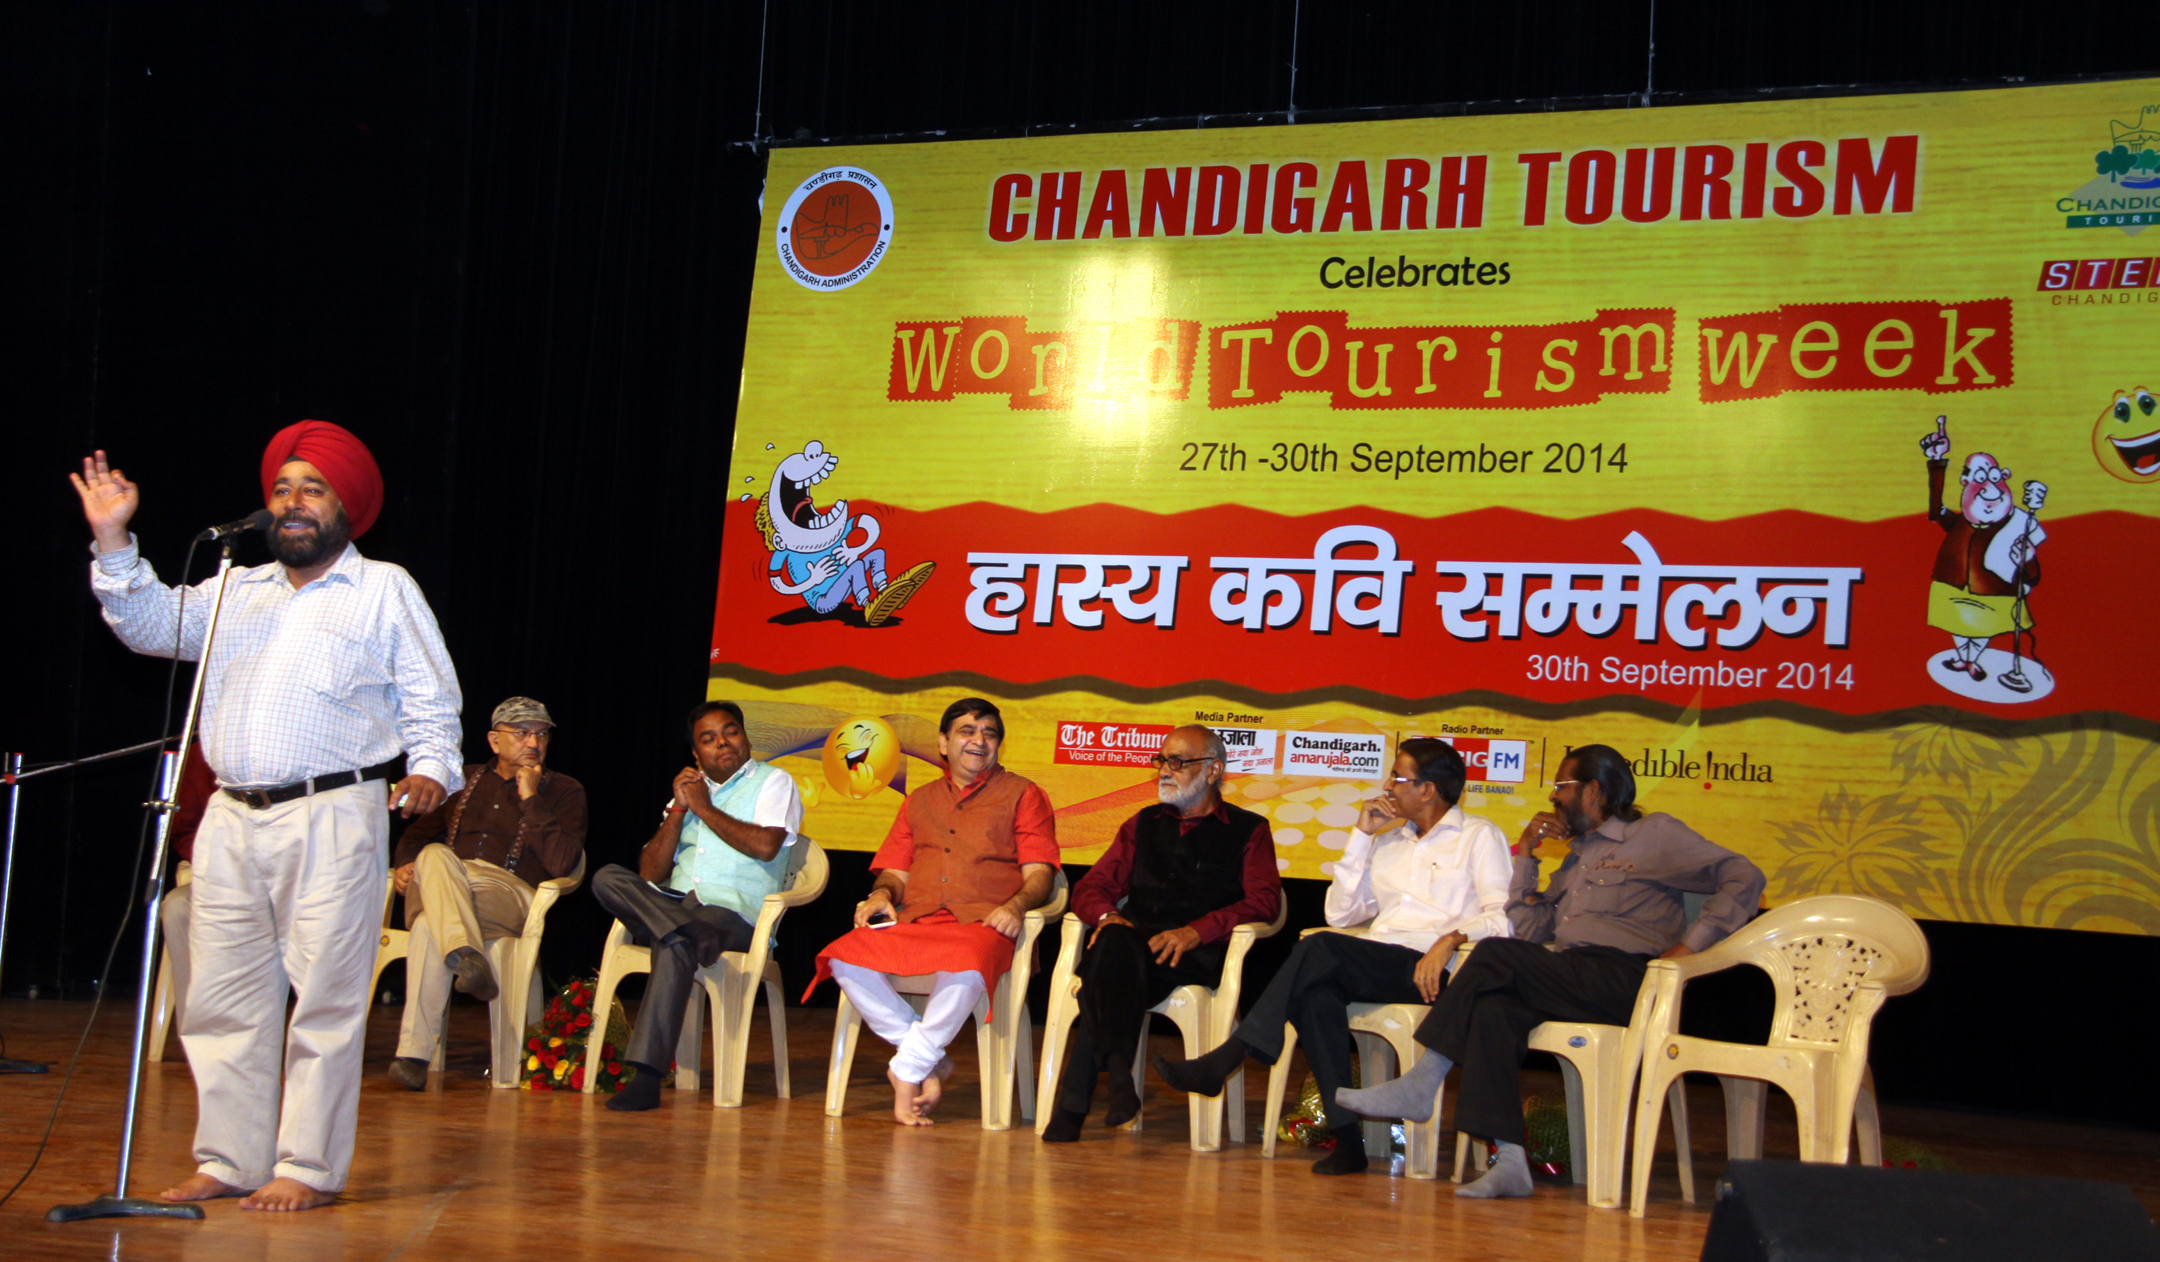 Chandigarh Tourism Department organised Hasya Kavi Sammelan on the occasion of �World Tourism Week-2014� at  Tagore Theatre, Sector-18, Chandigarh on Tuesday, September 30, 2014.